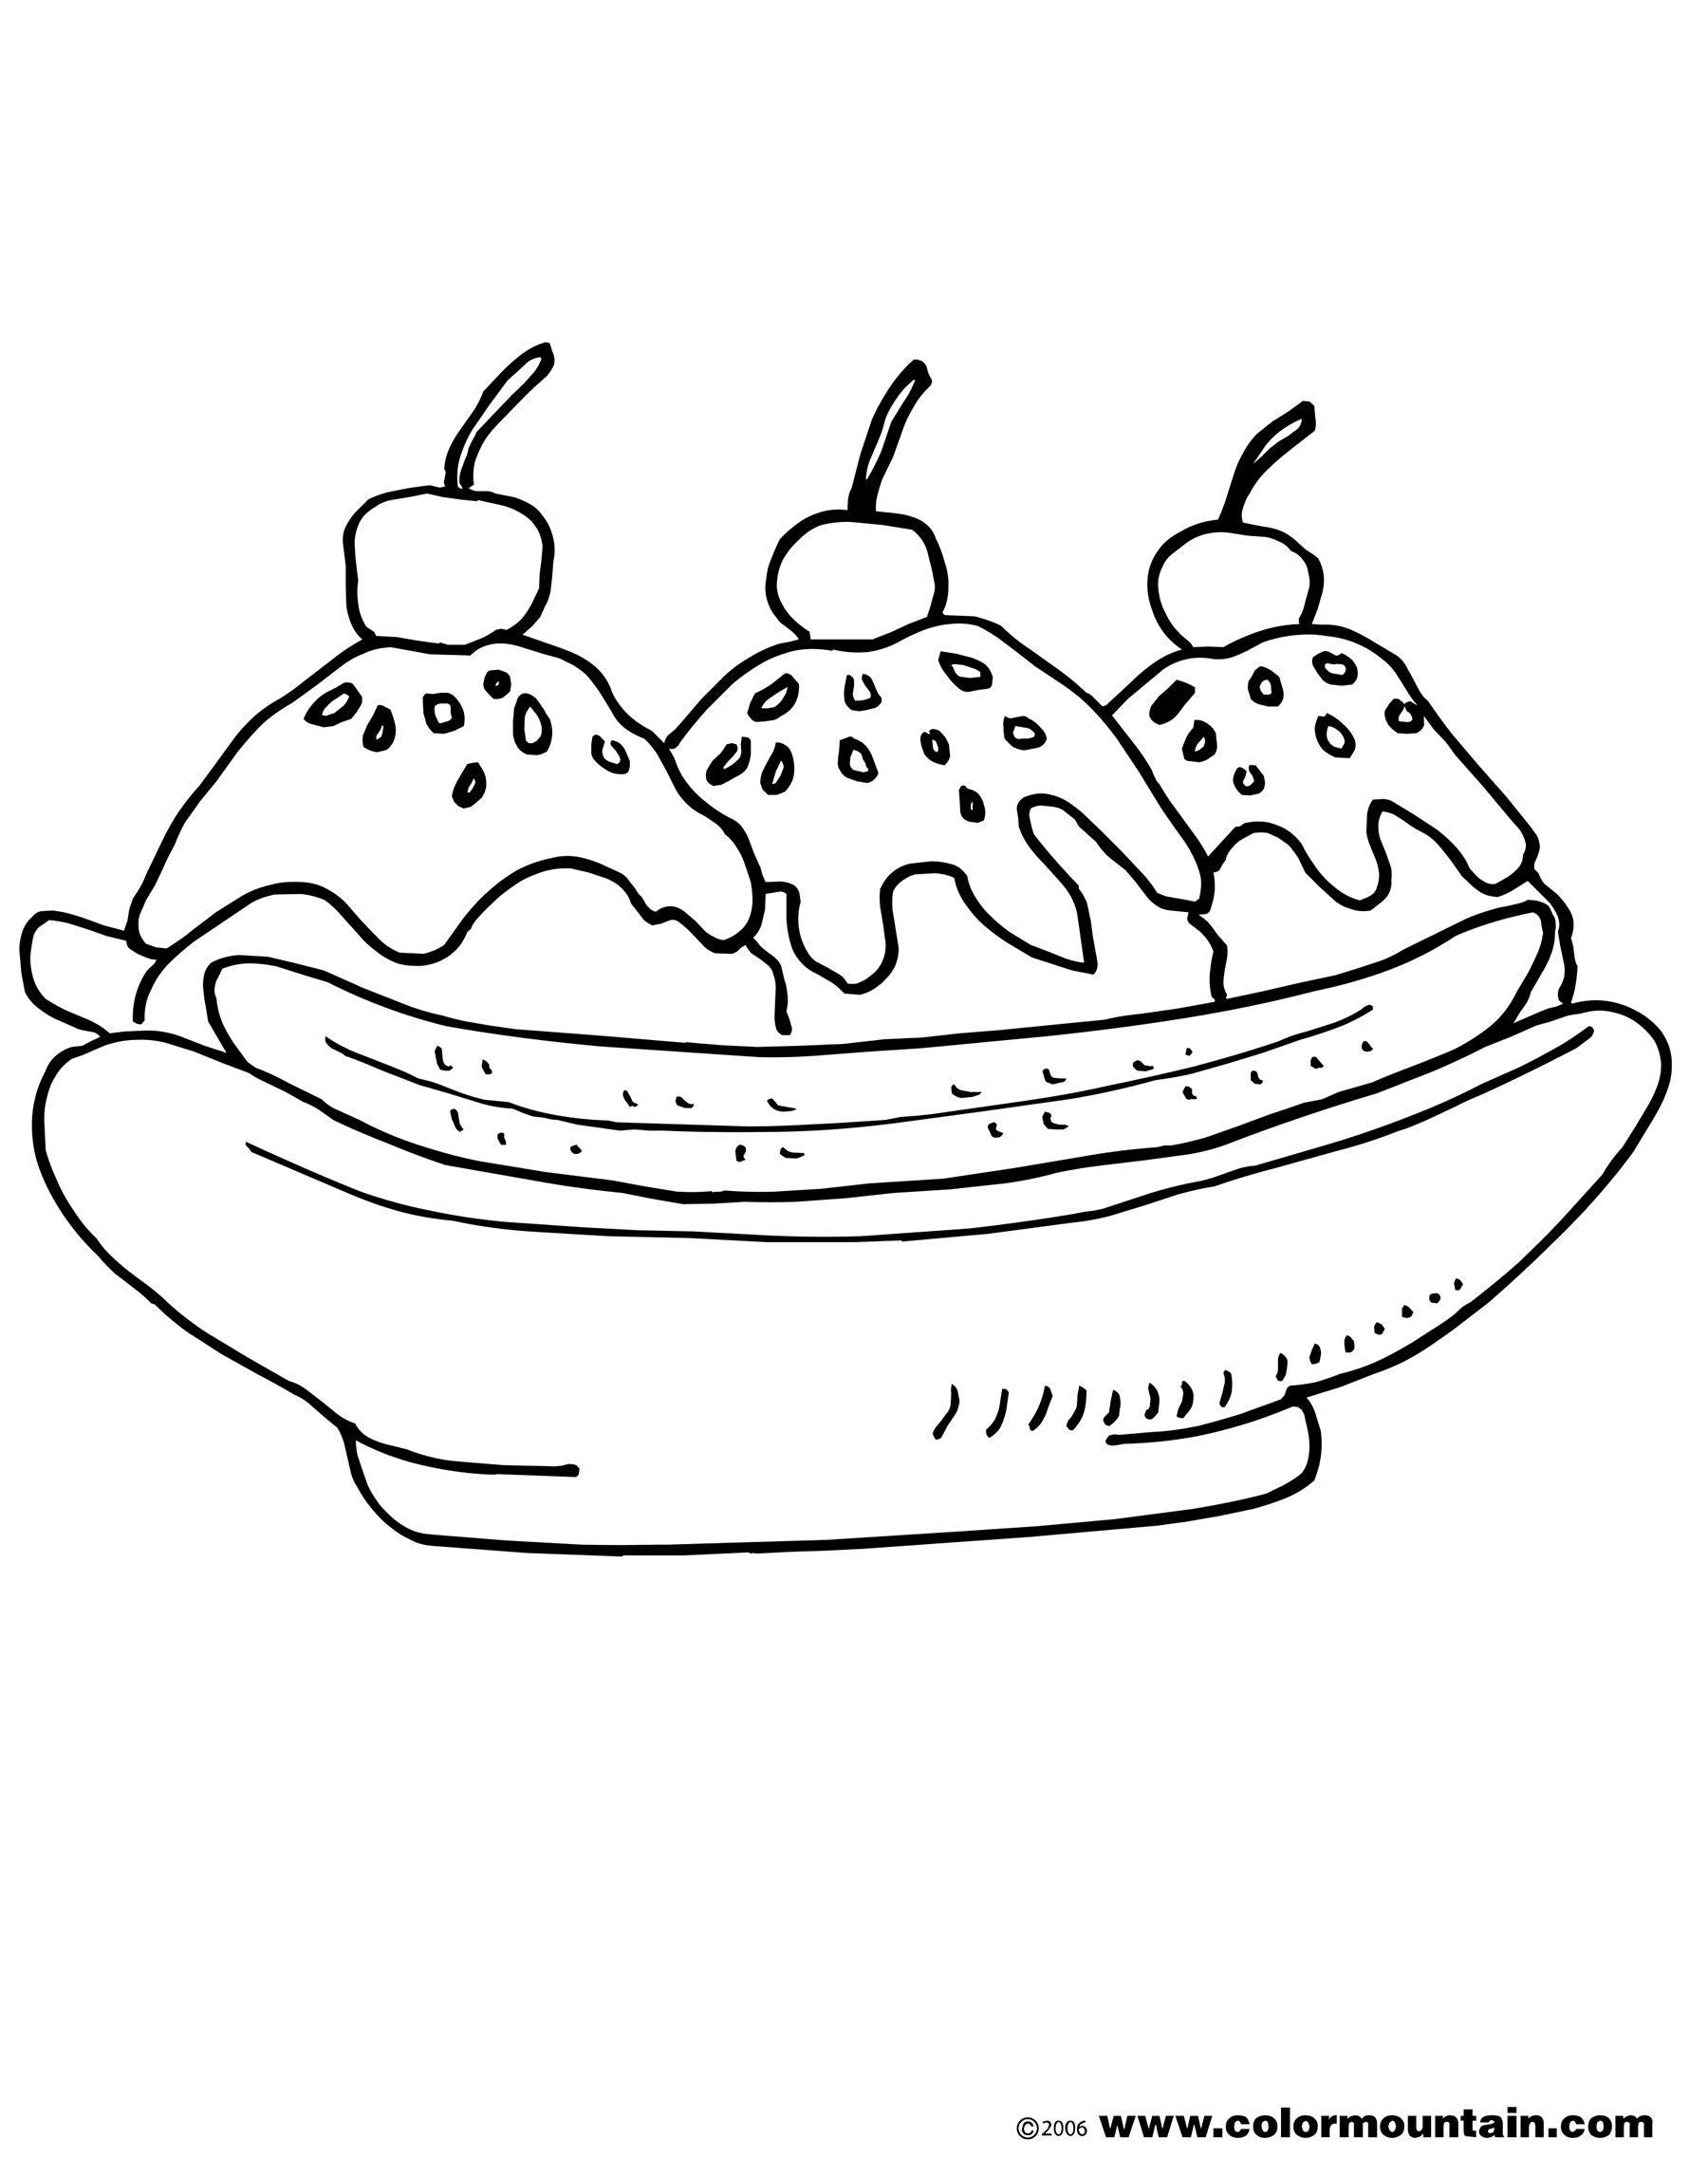 Ice Cream Sundae Printable Coloring Pages Coloring Pages